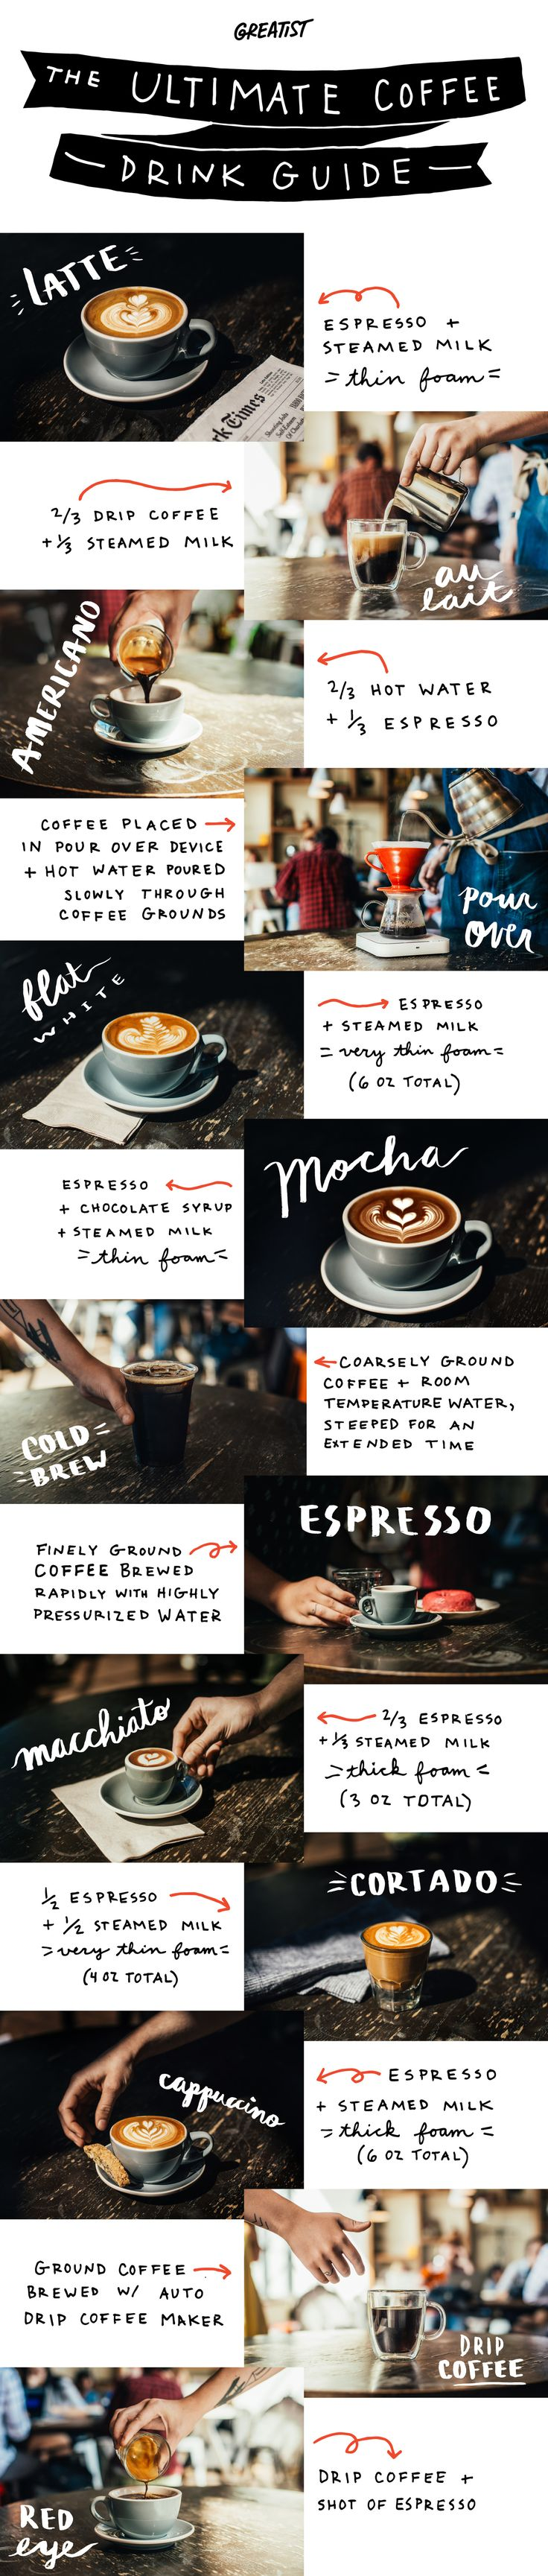 Flat white? Cortado?! HELP. #coffee #drink #guide http://greatist.com/eat/visual-guide-to-coffee-drinks